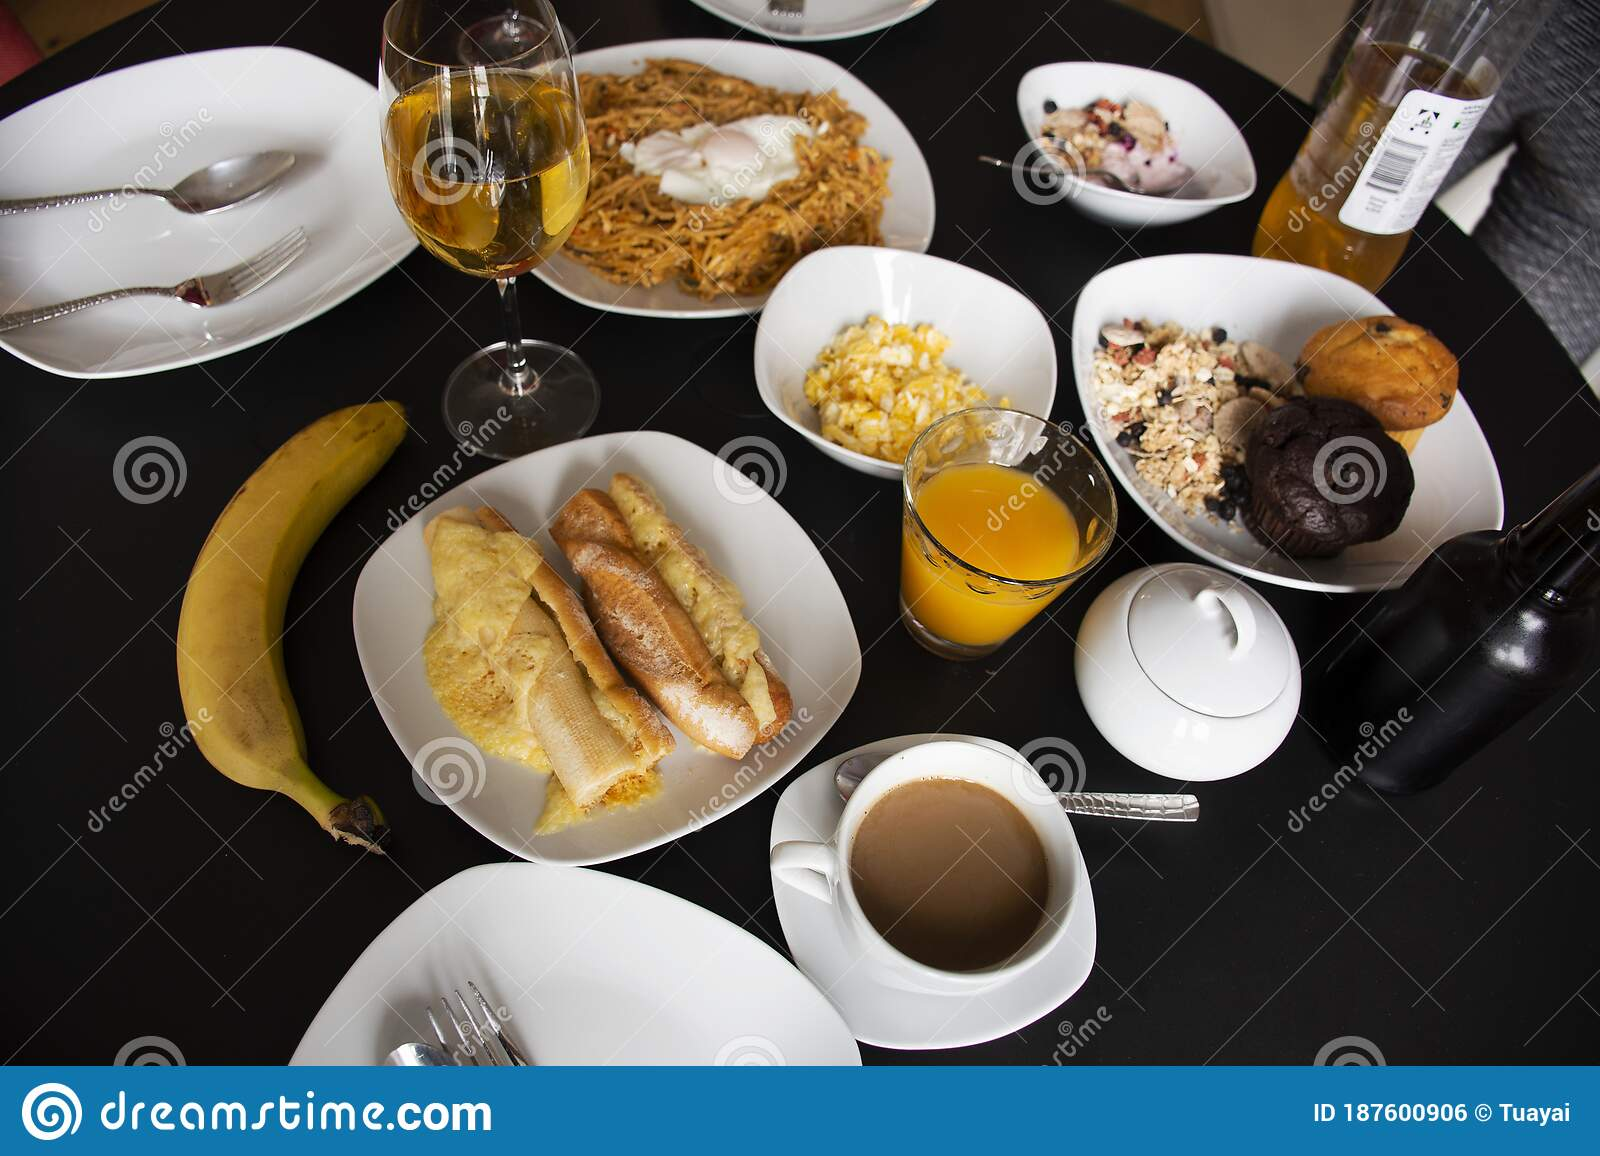 American Breakfast Or Continental Breakfasts German Style In Dining Room In Morning Time For Travelers And Guest People Eat And Stock Photo Image Of Appetizer Germany 187600906